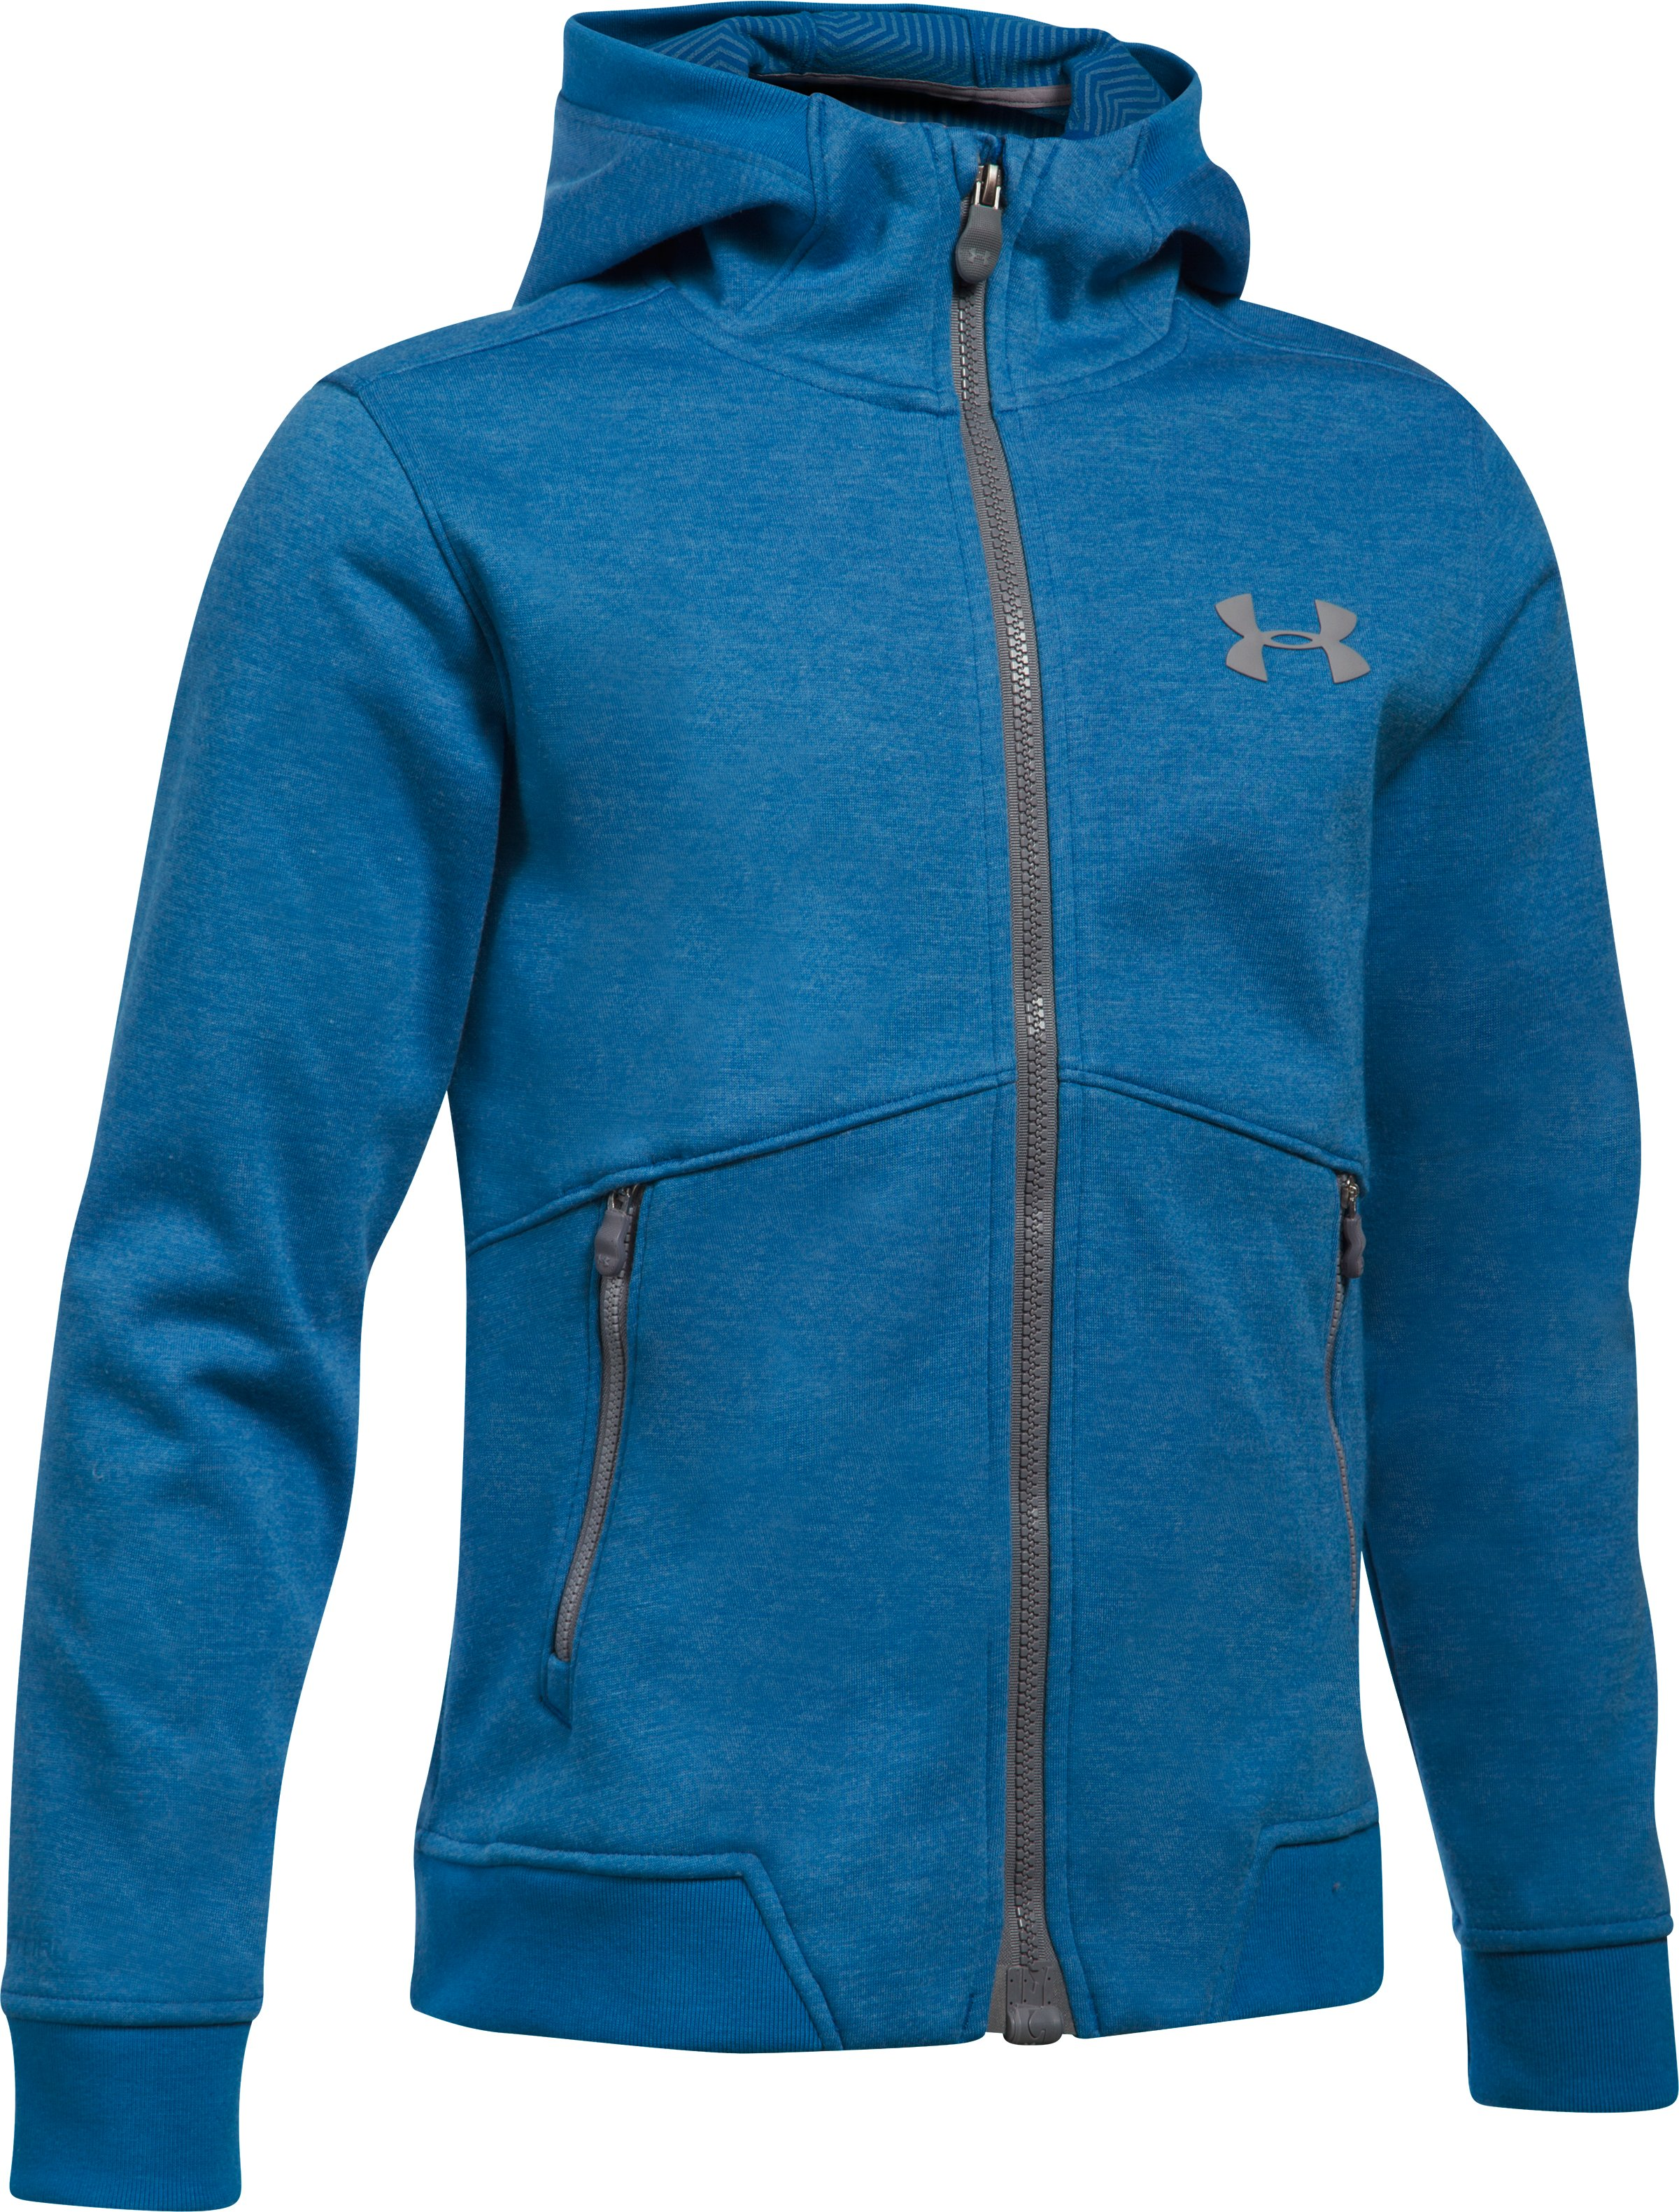 Boys' UA Storm Dobson Softshell, CRUISE BLUE, undefined